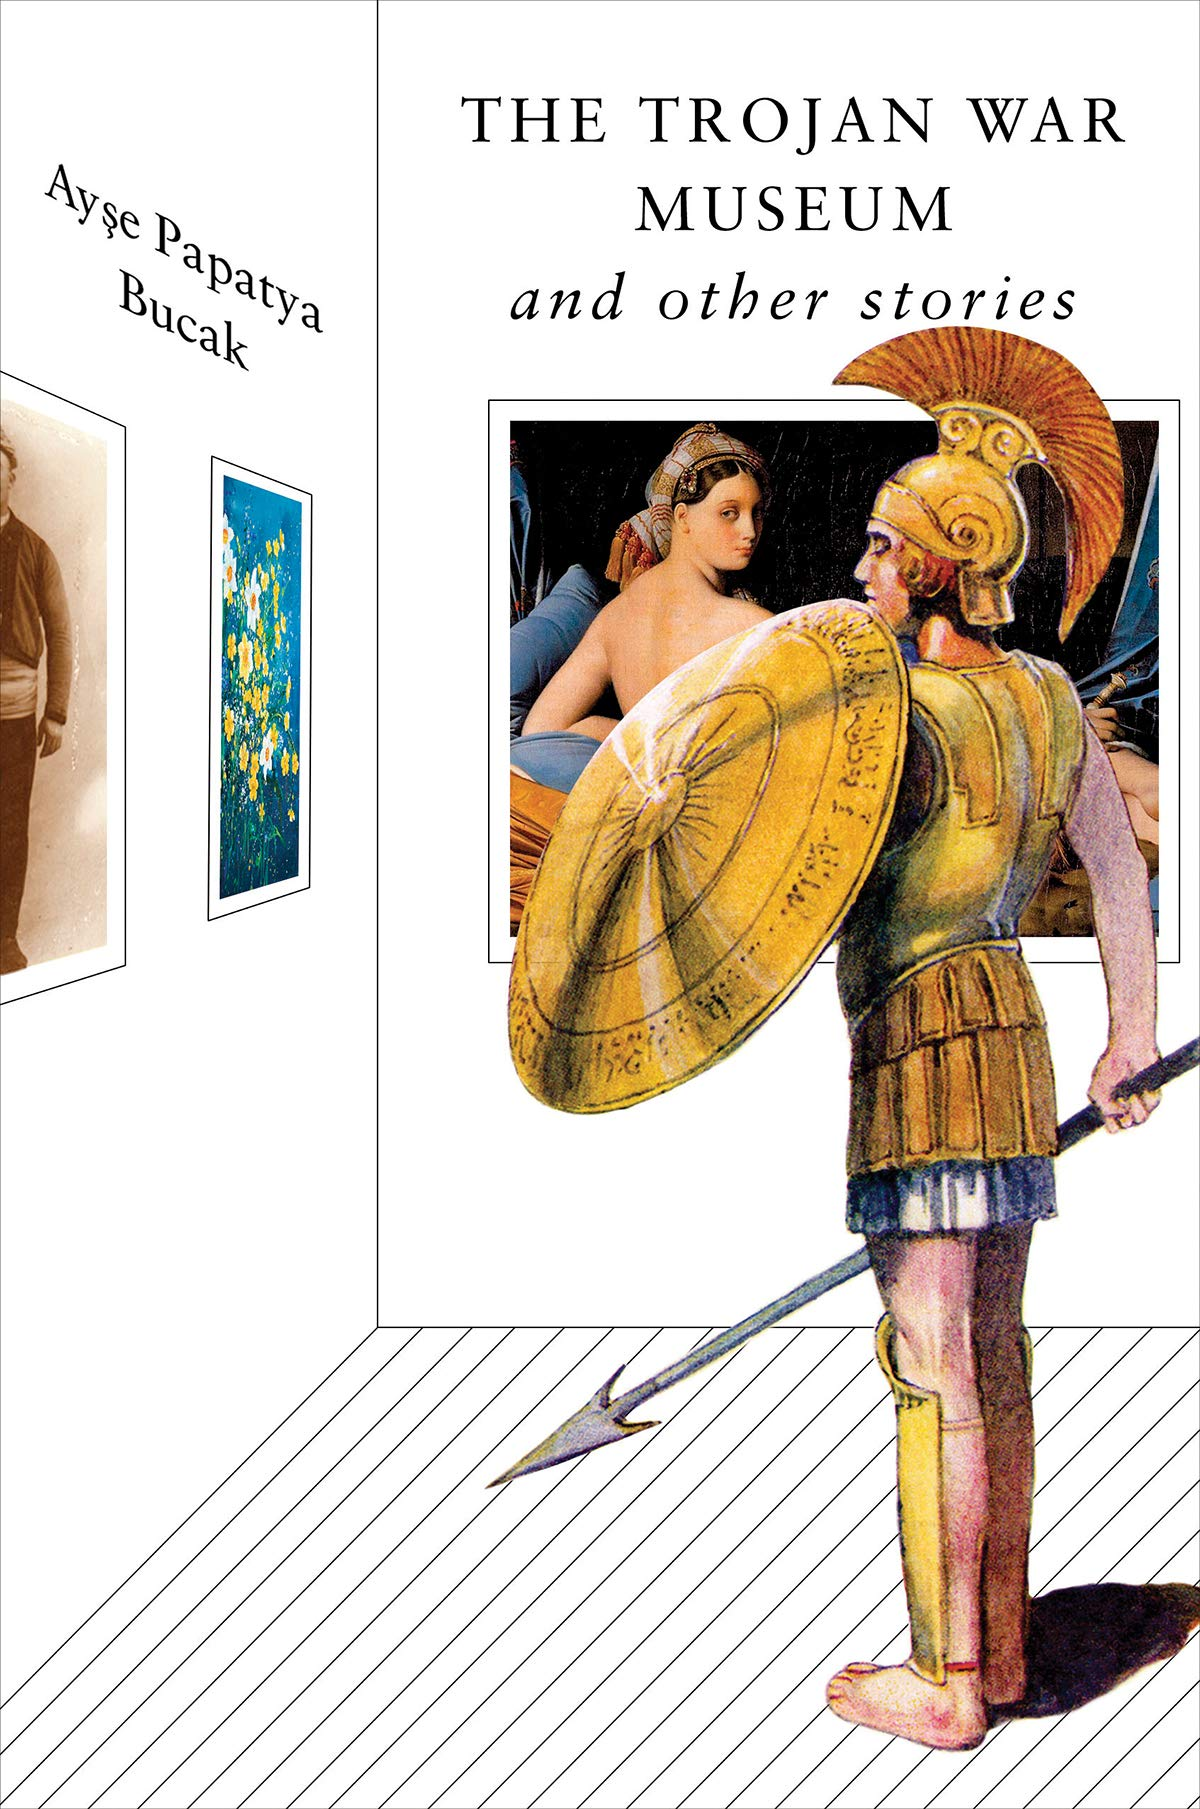 The Trojan War Museum: and Other Stories: Bucak, Ayse Papatya:  9781324002970: Amazon.com: Books